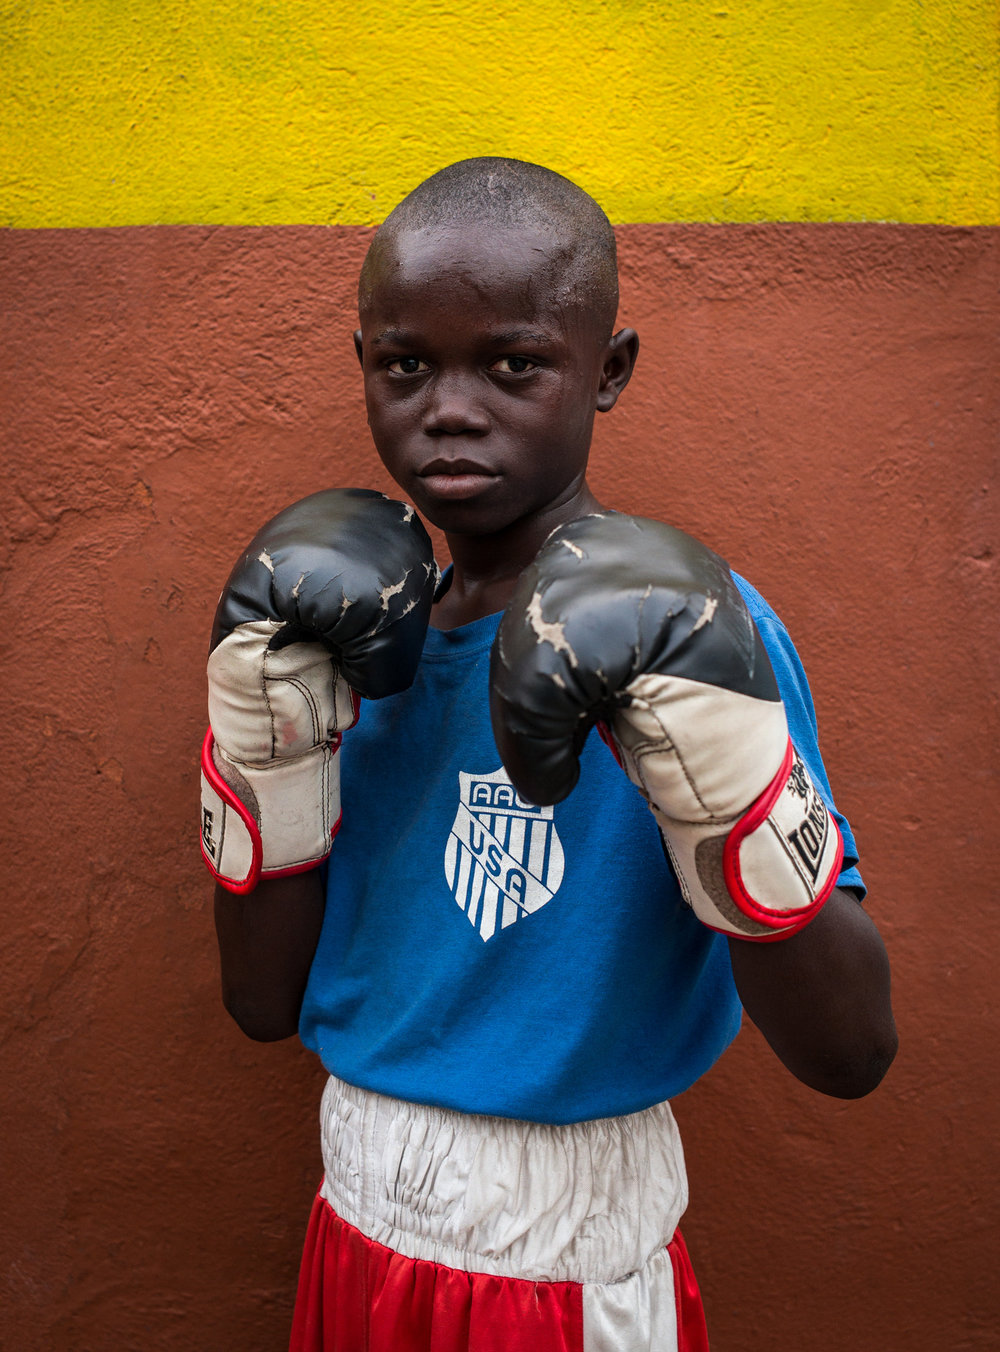 Ebanezer Ankrah, 11, training at the Black Panthers boxing Gym, James Town